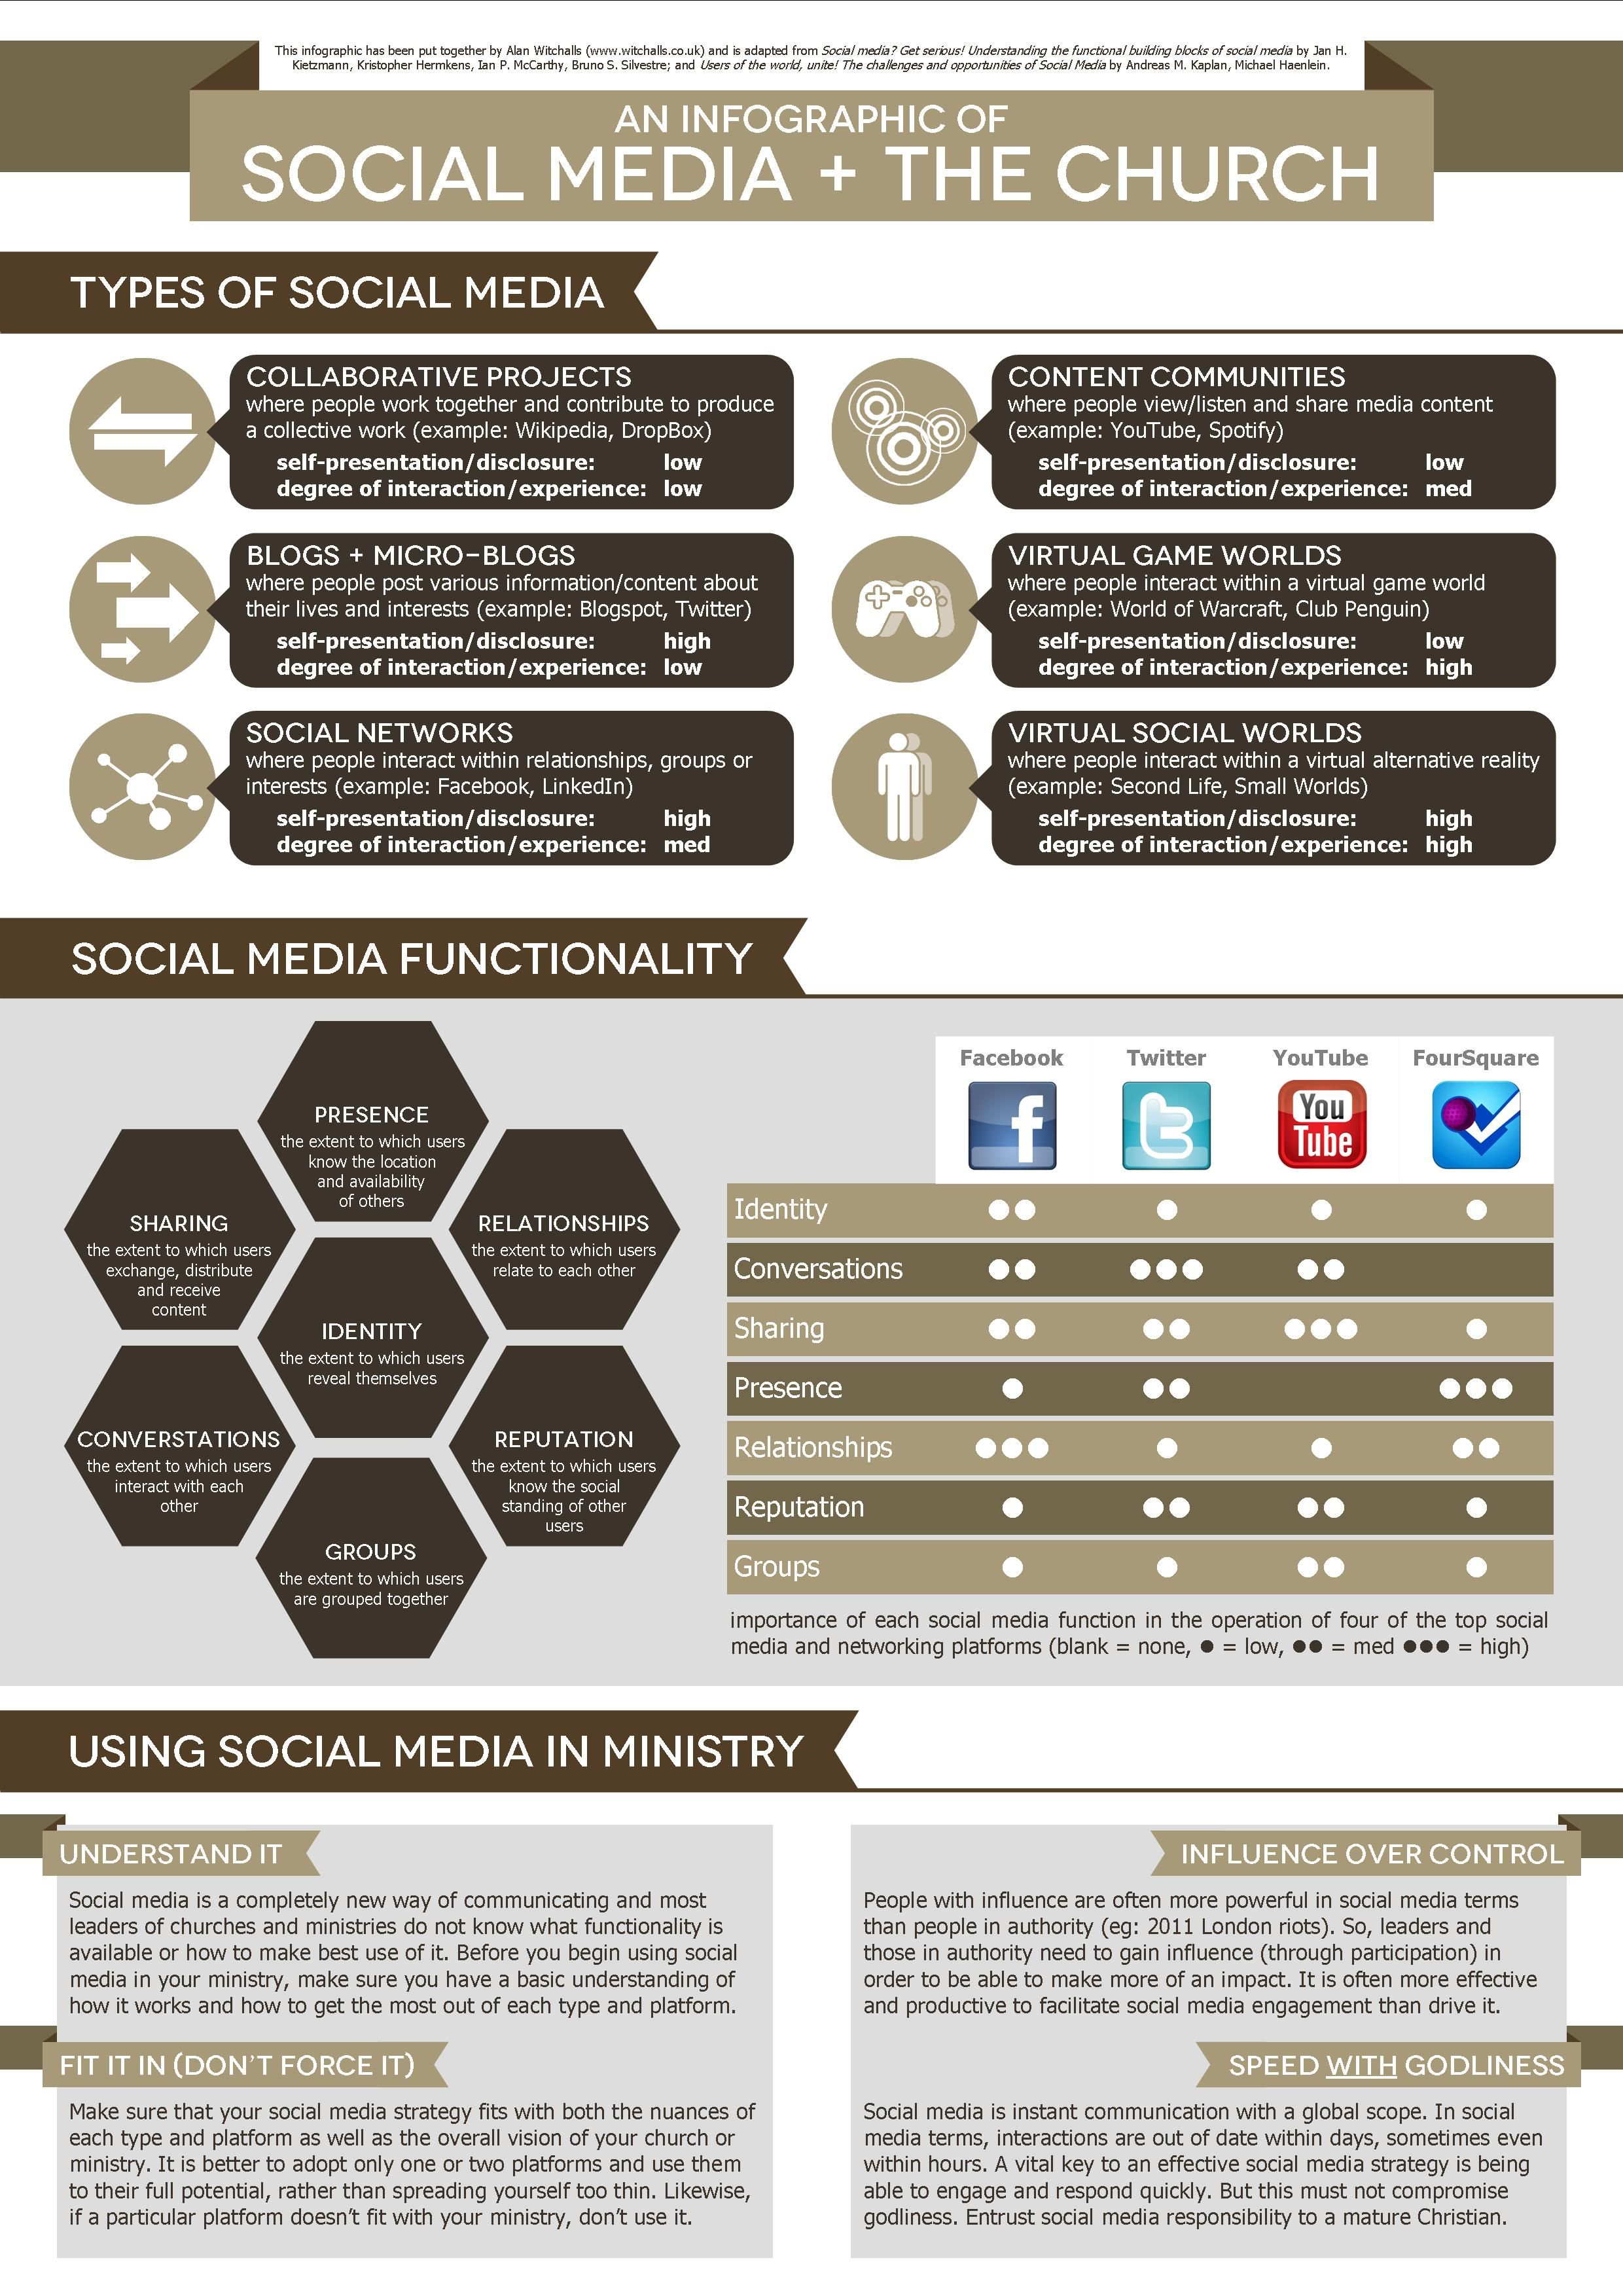 Social Media And The Church - Infographic ~ Ministry Best Practices ...